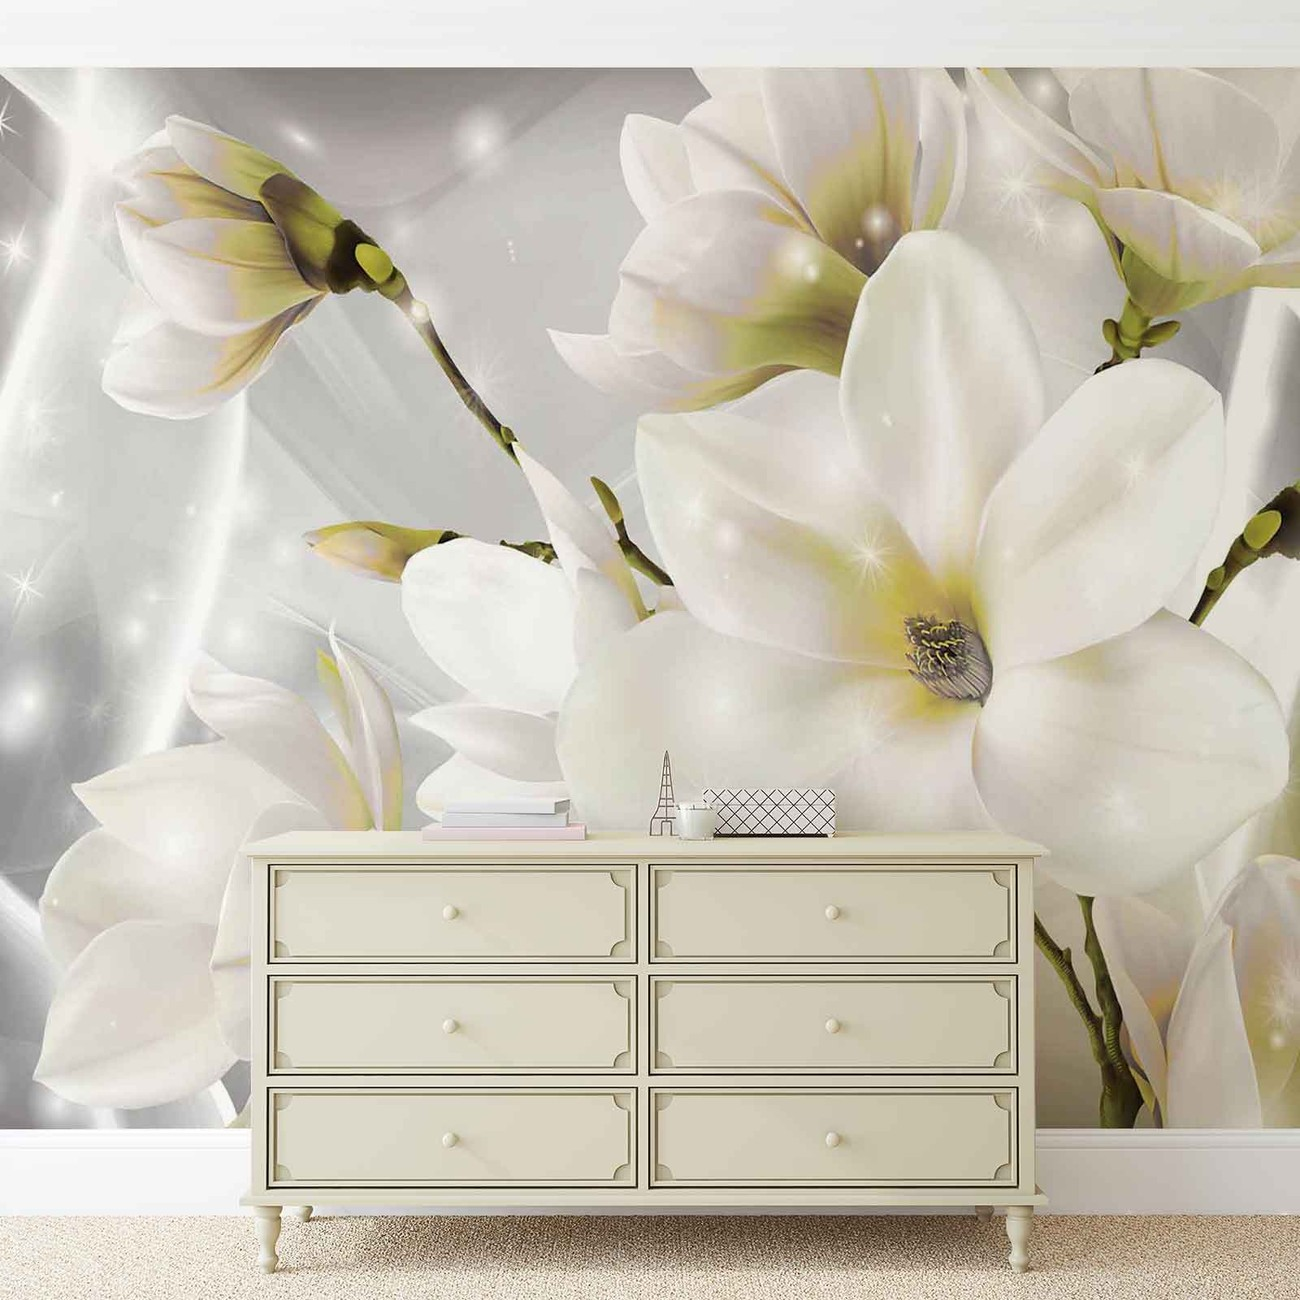 fototapete tapete wei e blumen bei europosters. Black Bedroom Furniture Sets. Home Design Ideas